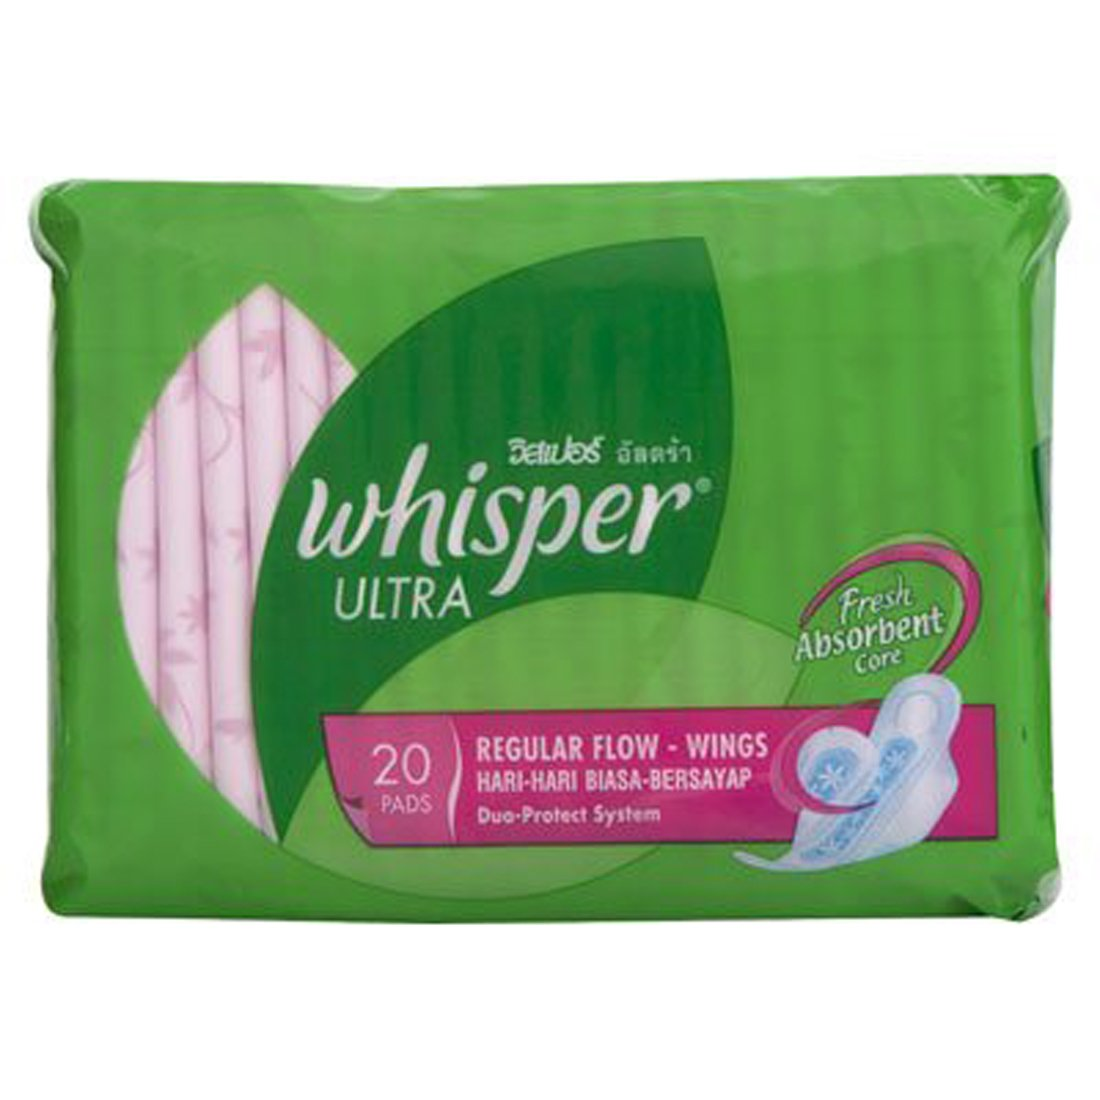 Amazon.com: Whisper Pads Ultra Regular Flow Wing 20pcs.: Health ...